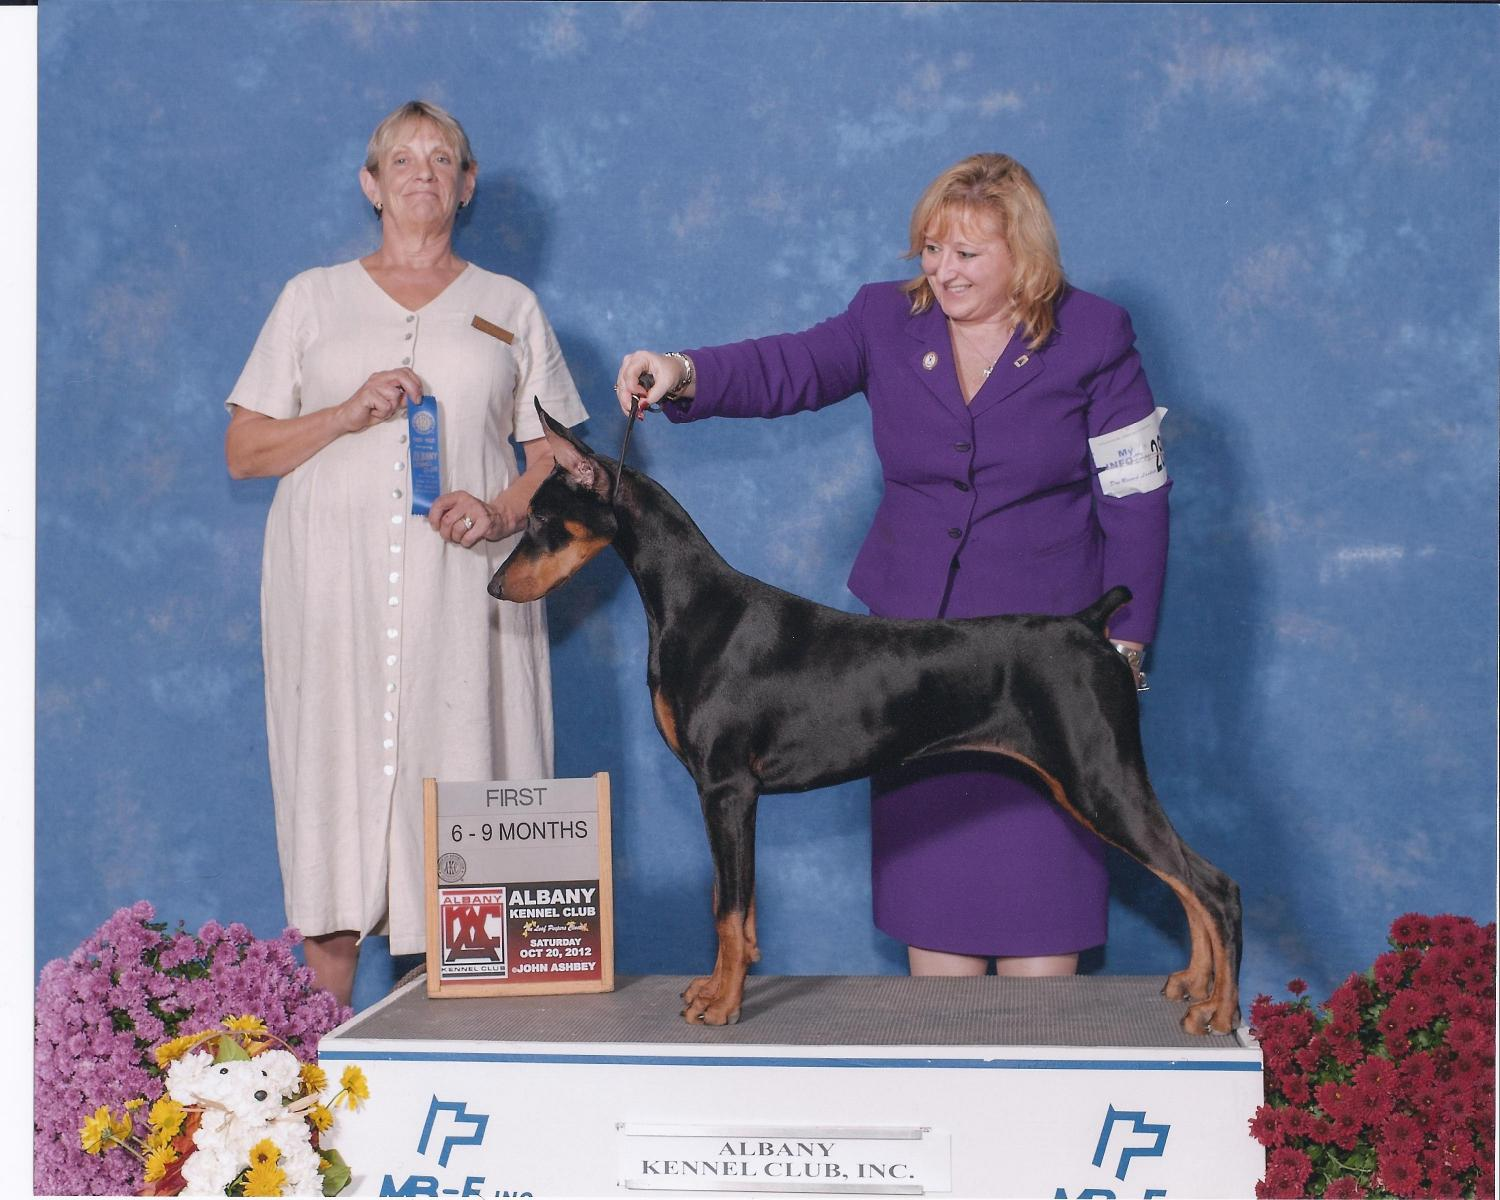 Raven and Reba-ravens-first-10-20-12-scan.jpg